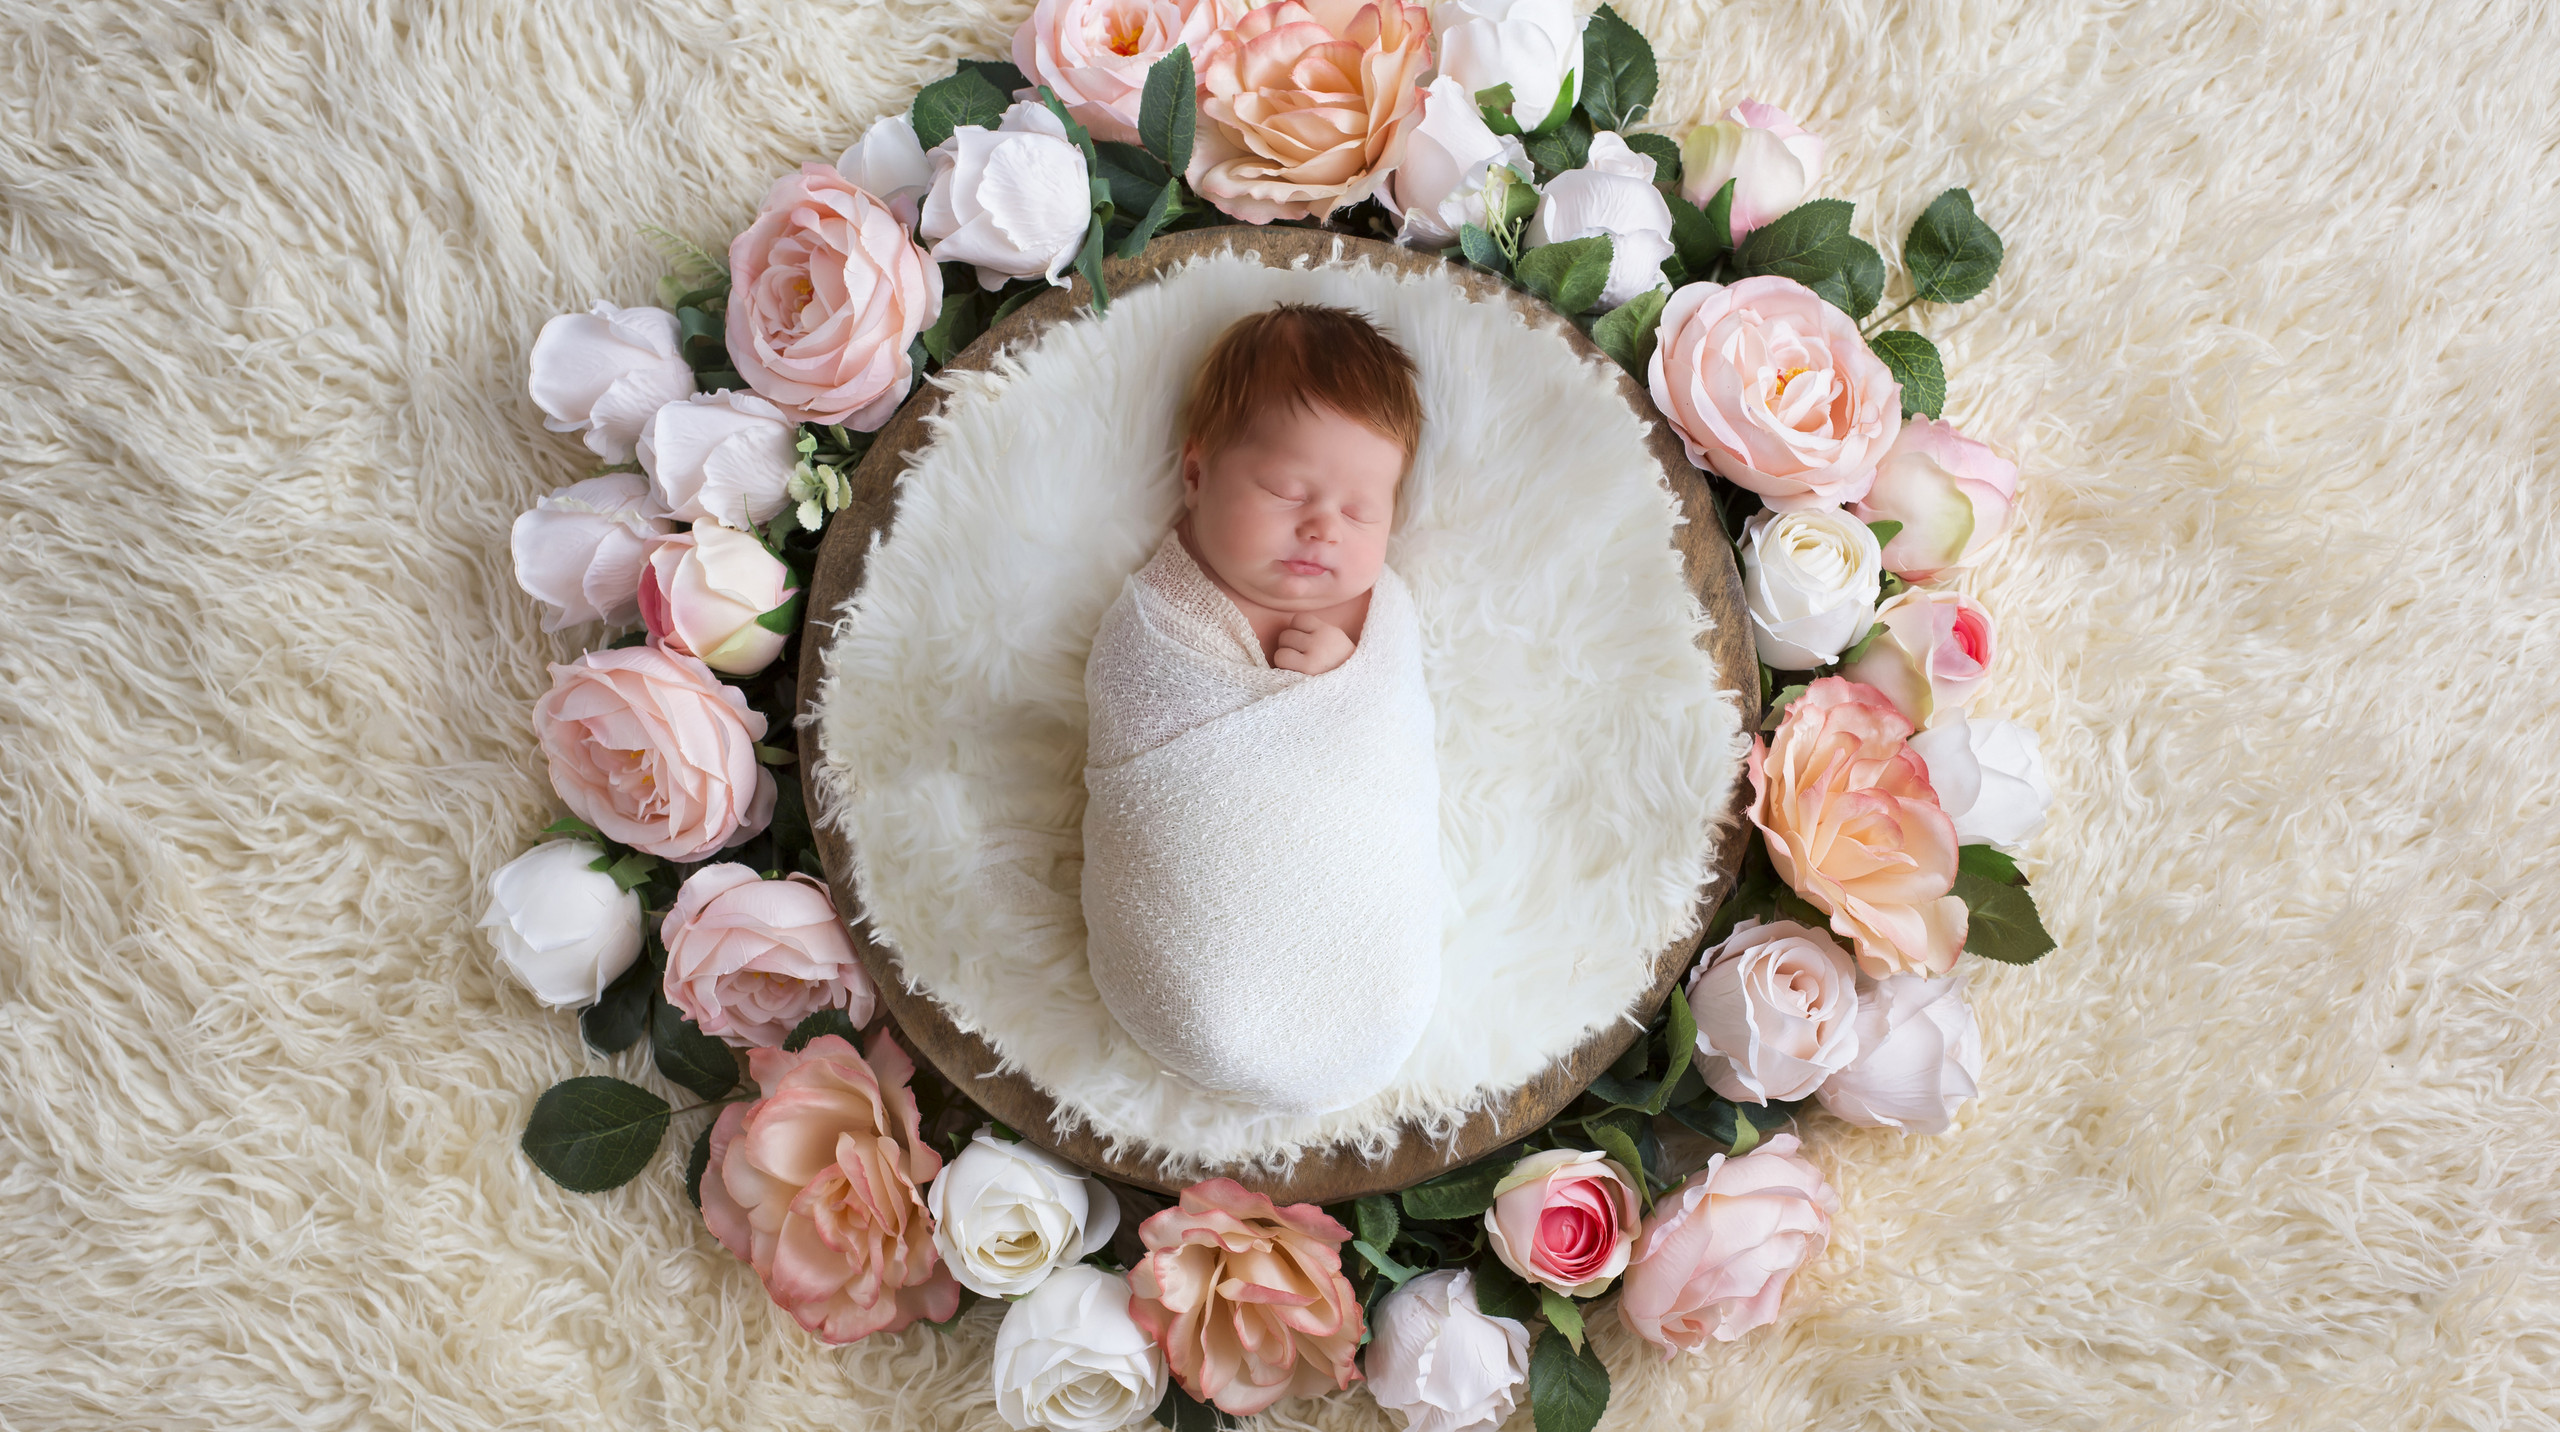 sleeping girl lying in bowl surrounded by roses